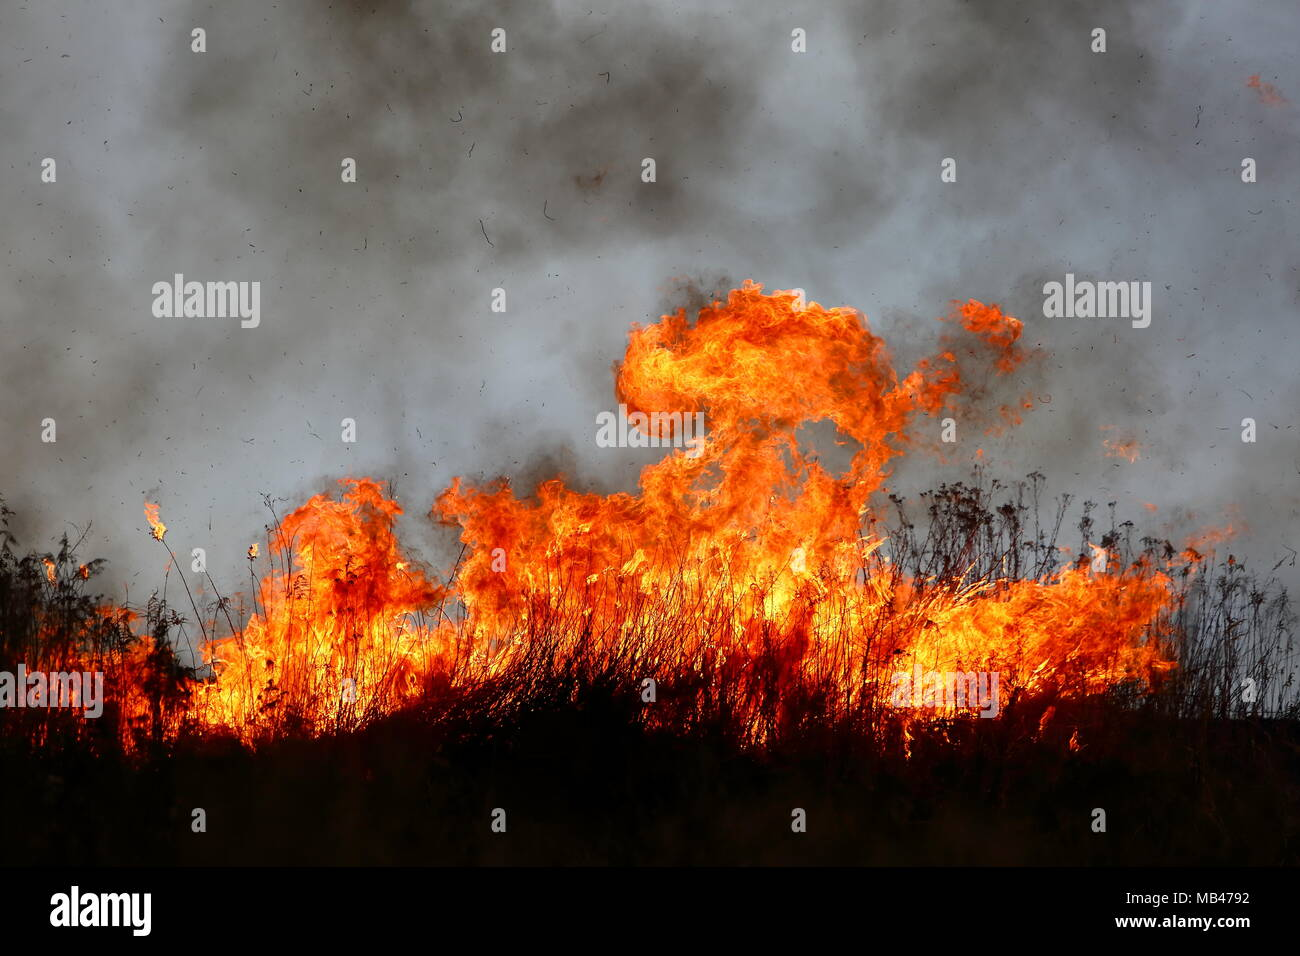 The fire of large areas of dry grass in the meadow can turn into a terrible tragedy as if it got close to residential houses. - Stock Image